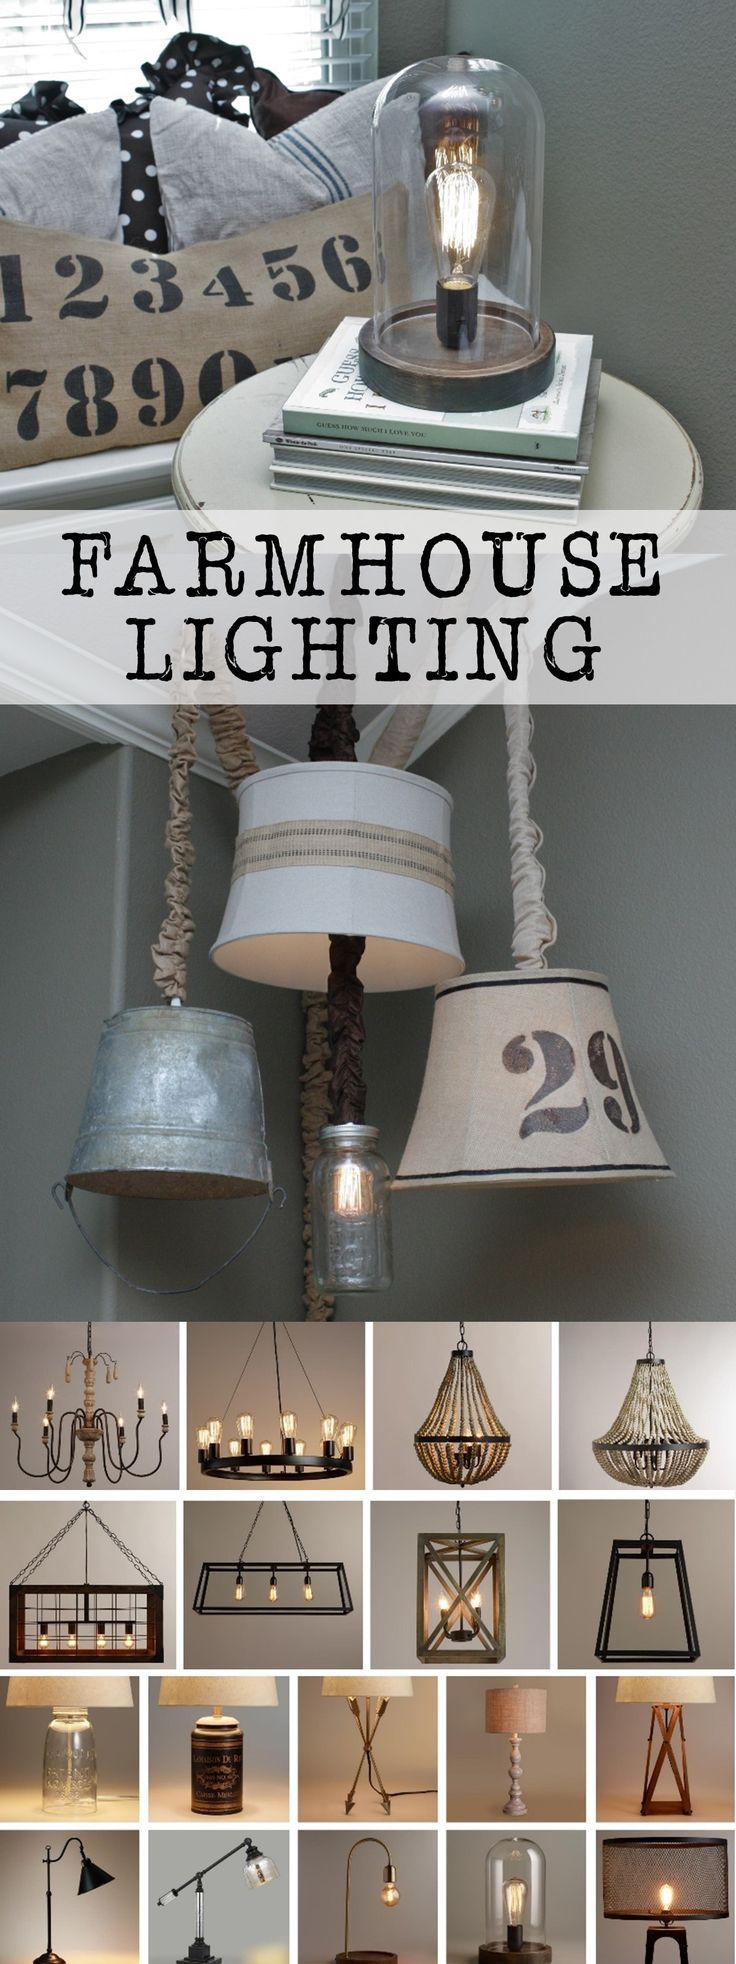 Lighting is such an important part of any space.  Today I am sharing some amazing farmhouse lighting options.  From lamps, to chandeliers, accent lighting, outdoors....I have you covered!! #DiscoverWorldMarket #WMAffiliate #Ad